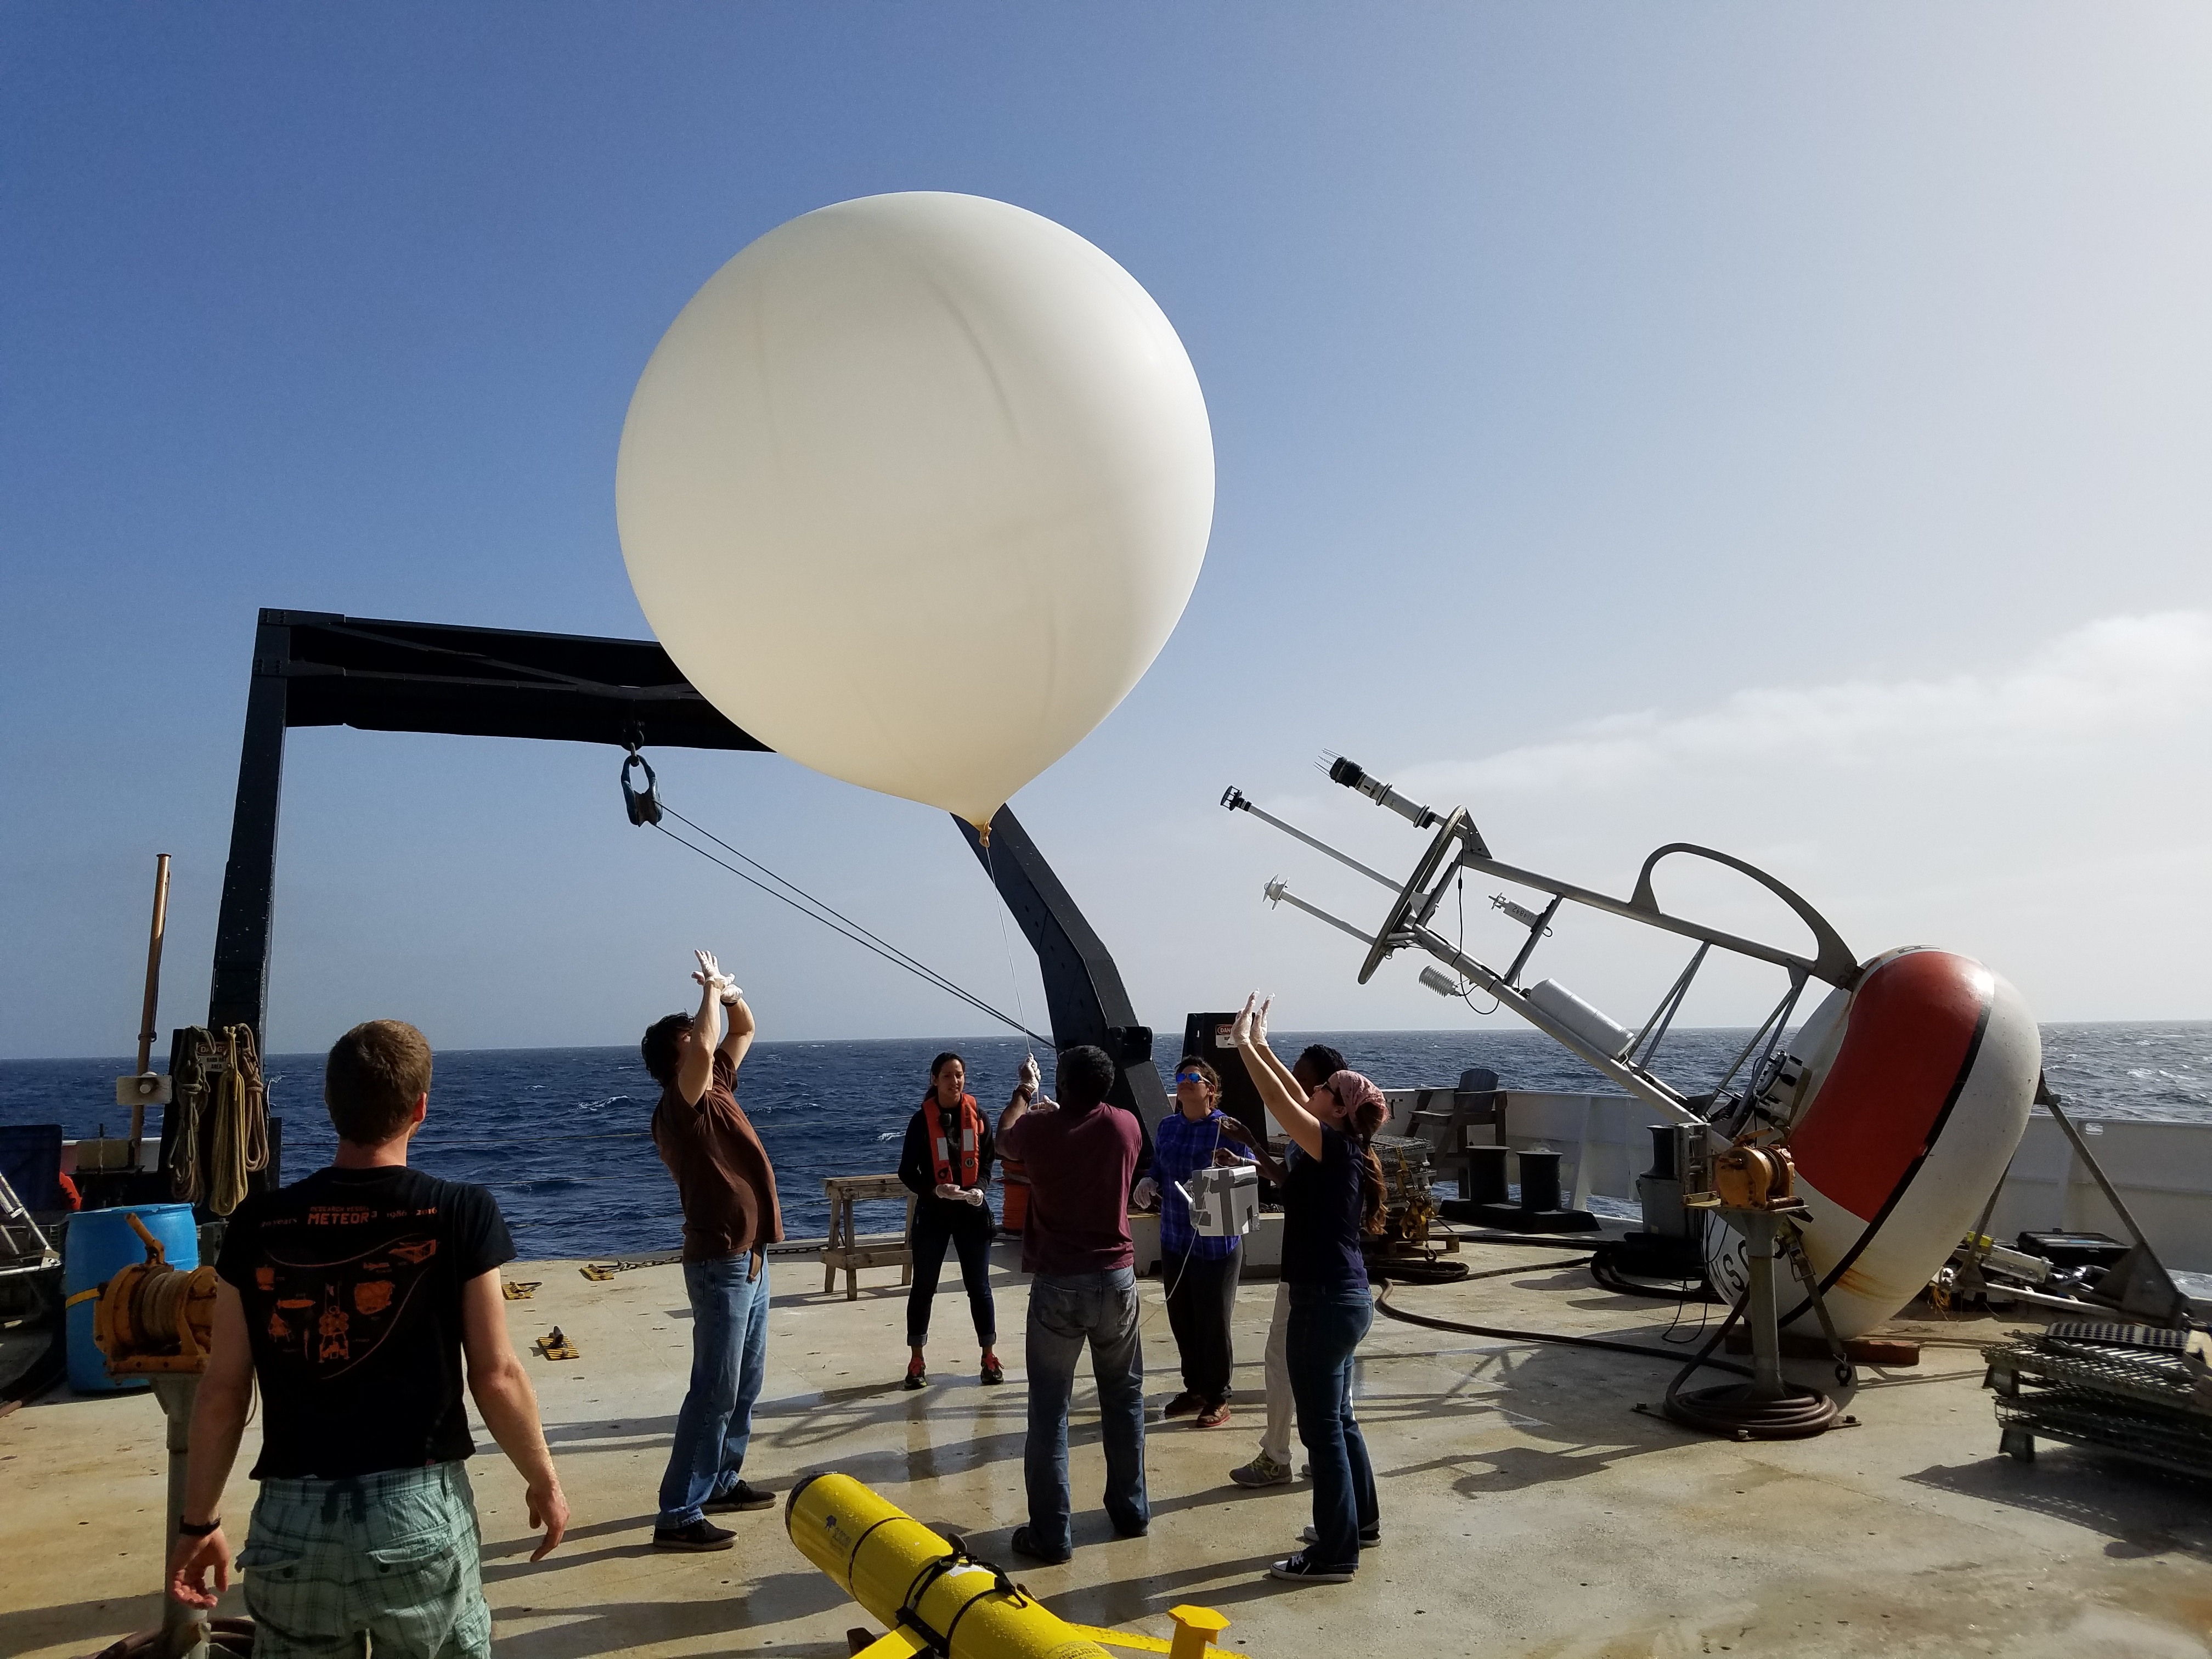 Many scientists are needed to launch an ozonesonde. Image credit: NOAA